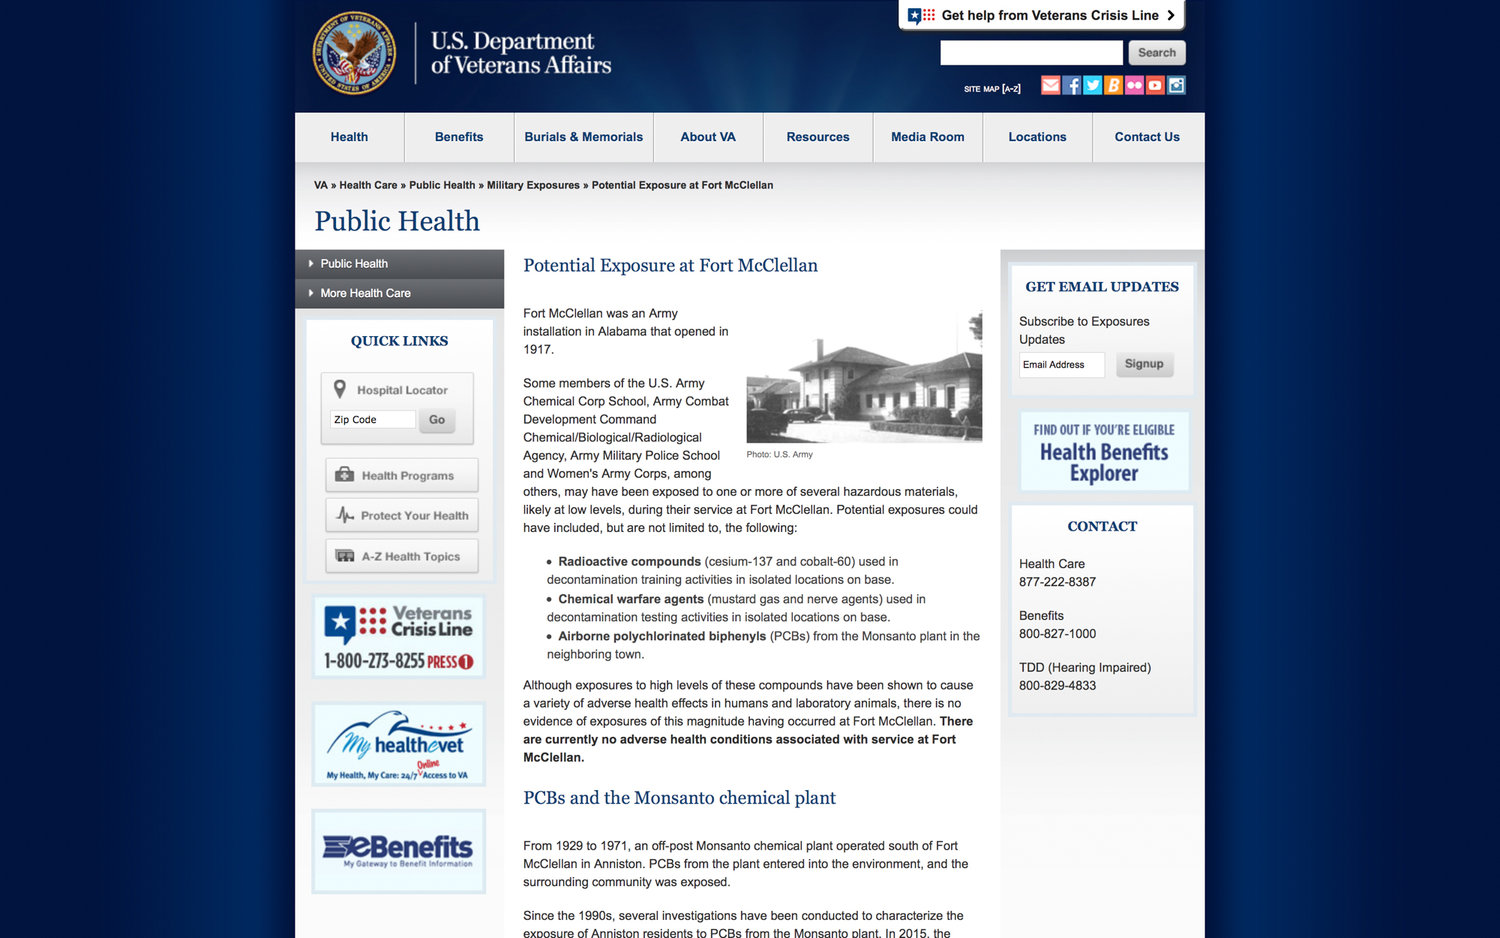 The official U.S. Department of Veterans Affairs website listing toxins that Fort McClellan personnel were possibly exposed to and describing the potential exposure levels as not high enough to cause health problems for the veterans. https://www.publichealth.va.gov/exposures/fort-mcclellan/